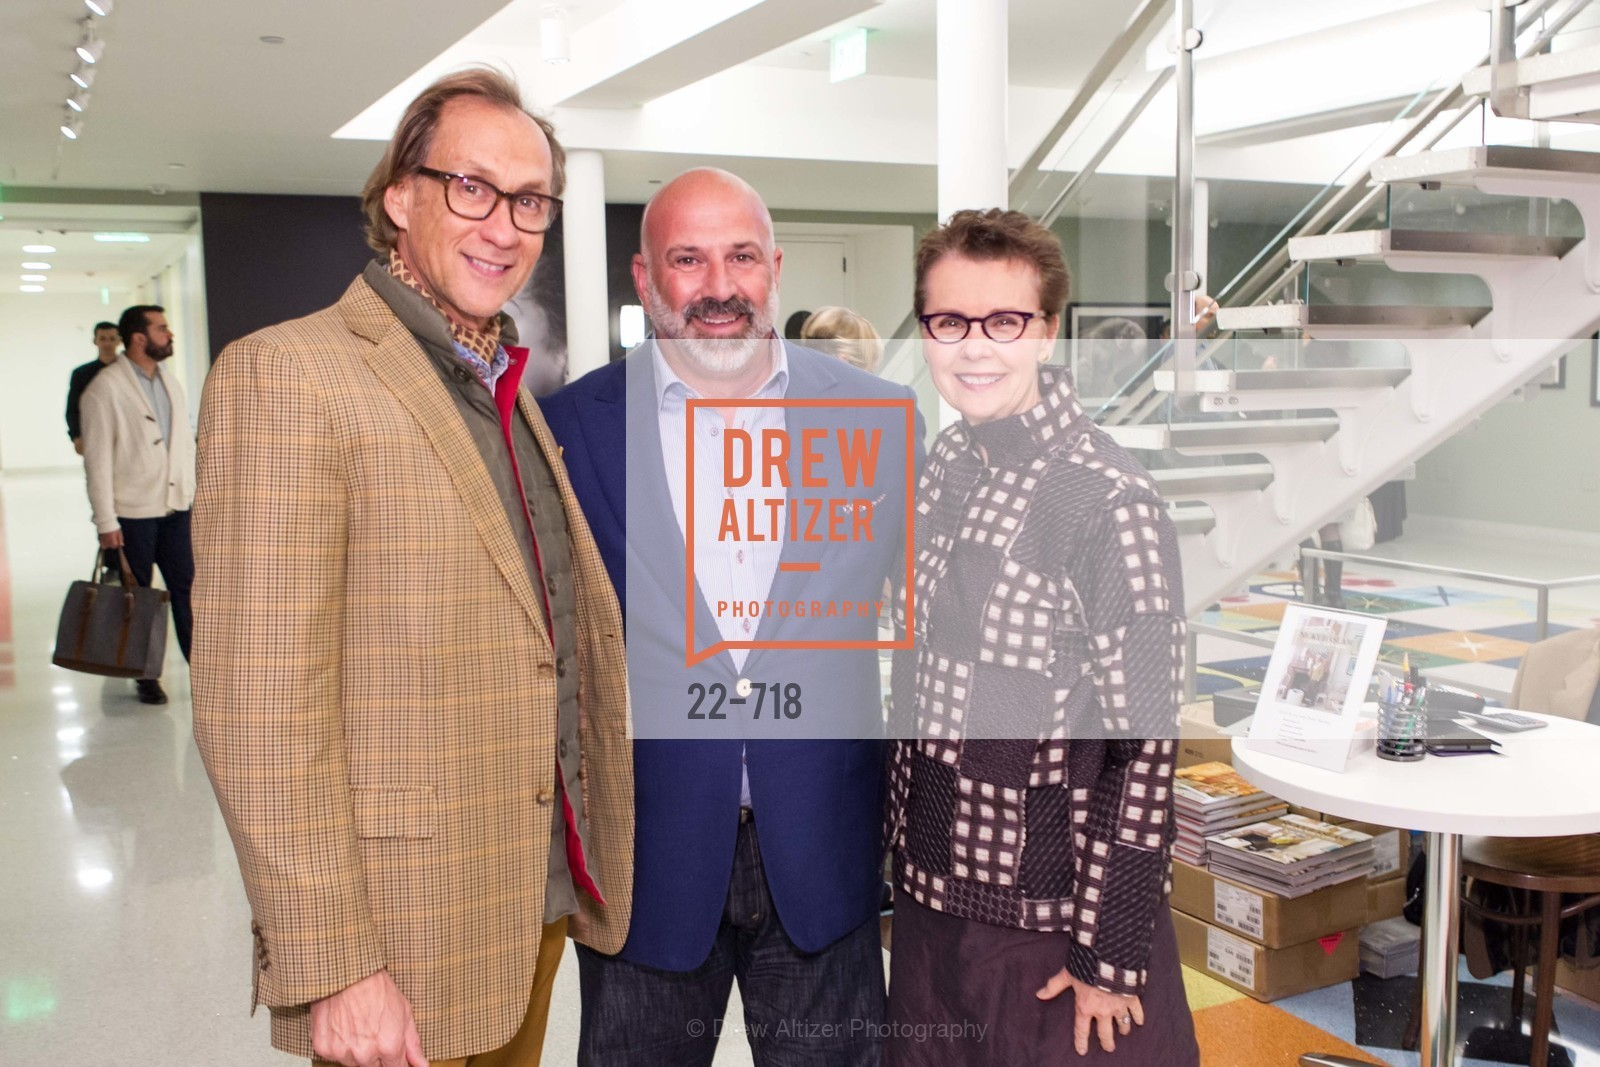 Ned Mobley, Geoffrey DeSousa, Kathleen Taylor, ICAA Hosts NICKY HASLAM'S Lecture and Book Signing, US, May 12th, 2015,Drew Altizer, Drew Altizer Photography, full-service agency, private events, San Francisco photographer, photographer california